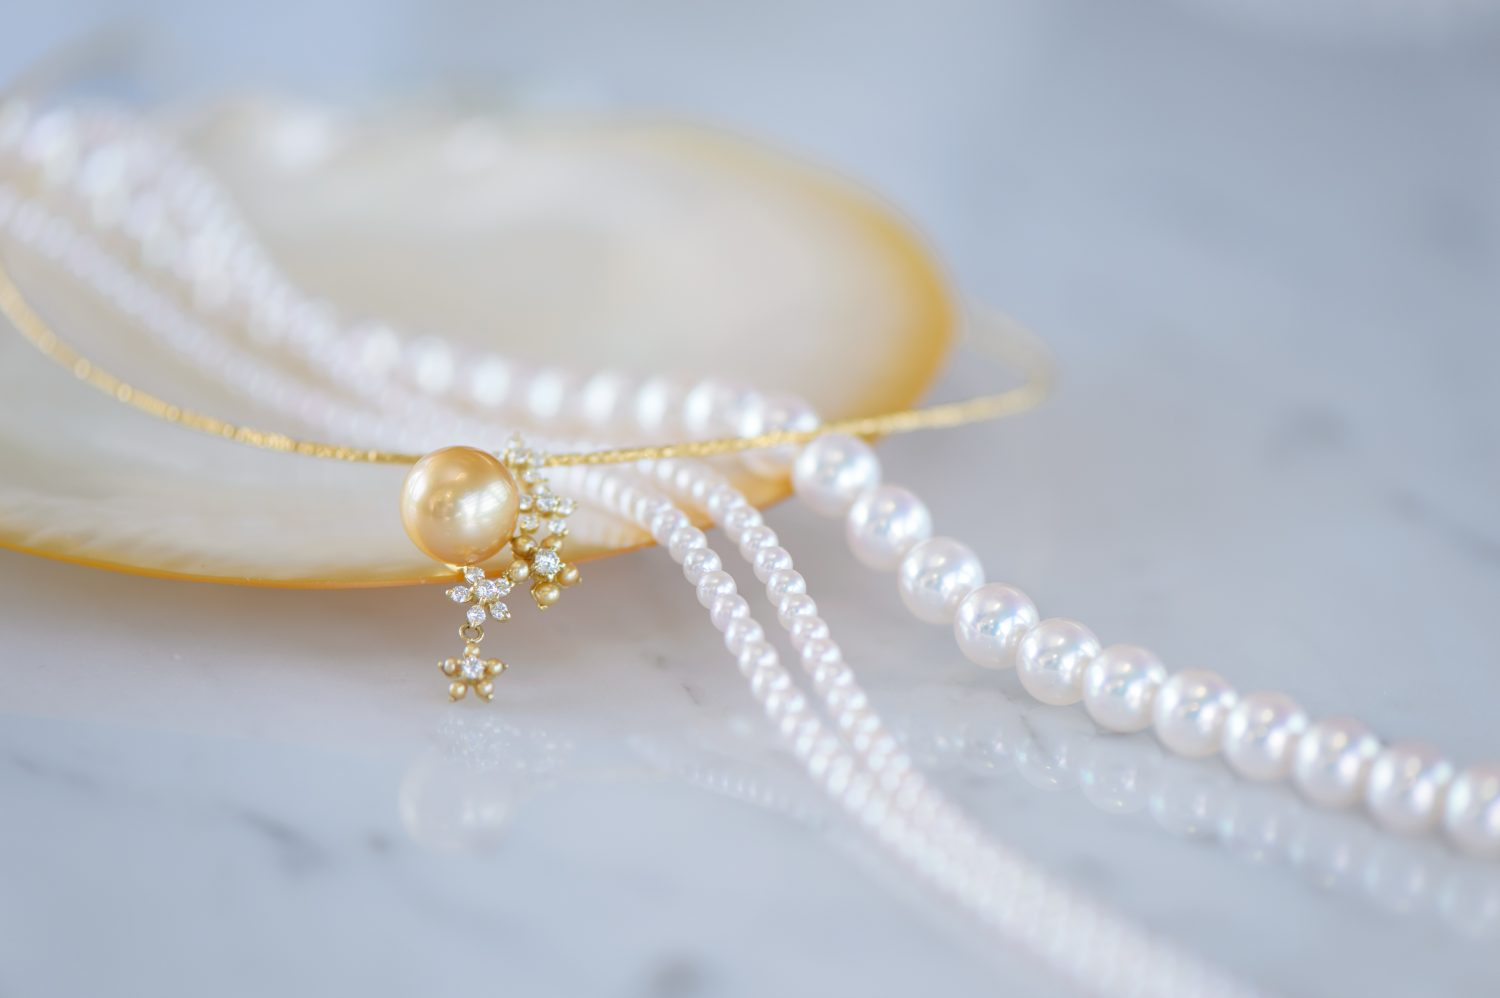 Pearl Necklace as a part of Japanese culture